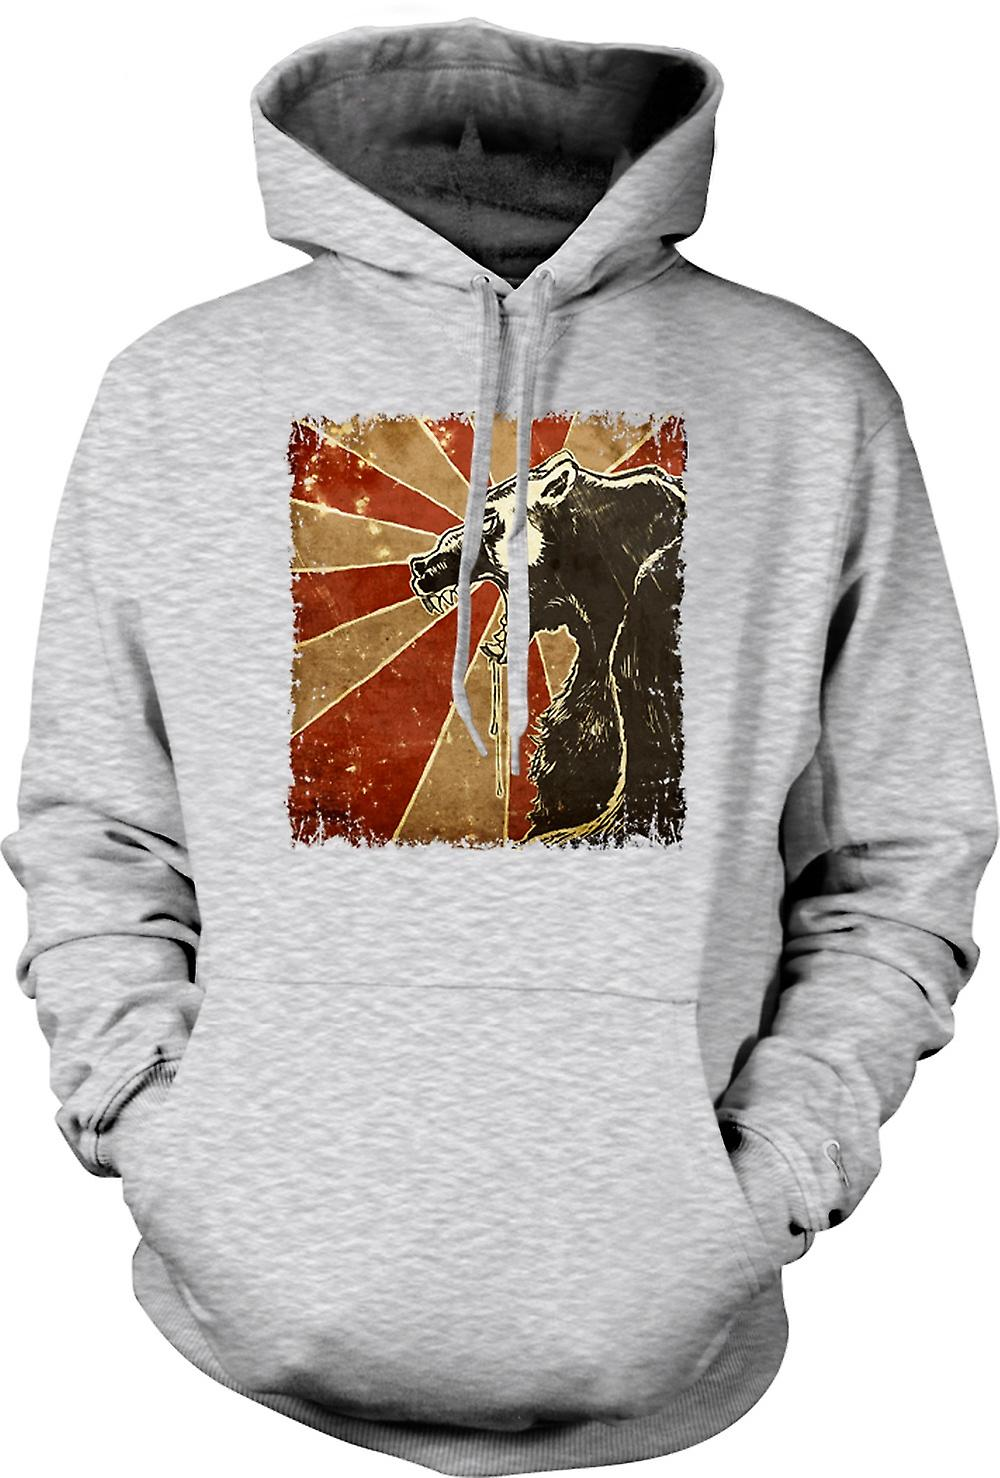 Mens Hoodie - Russian Bear - Cool Retro Poster